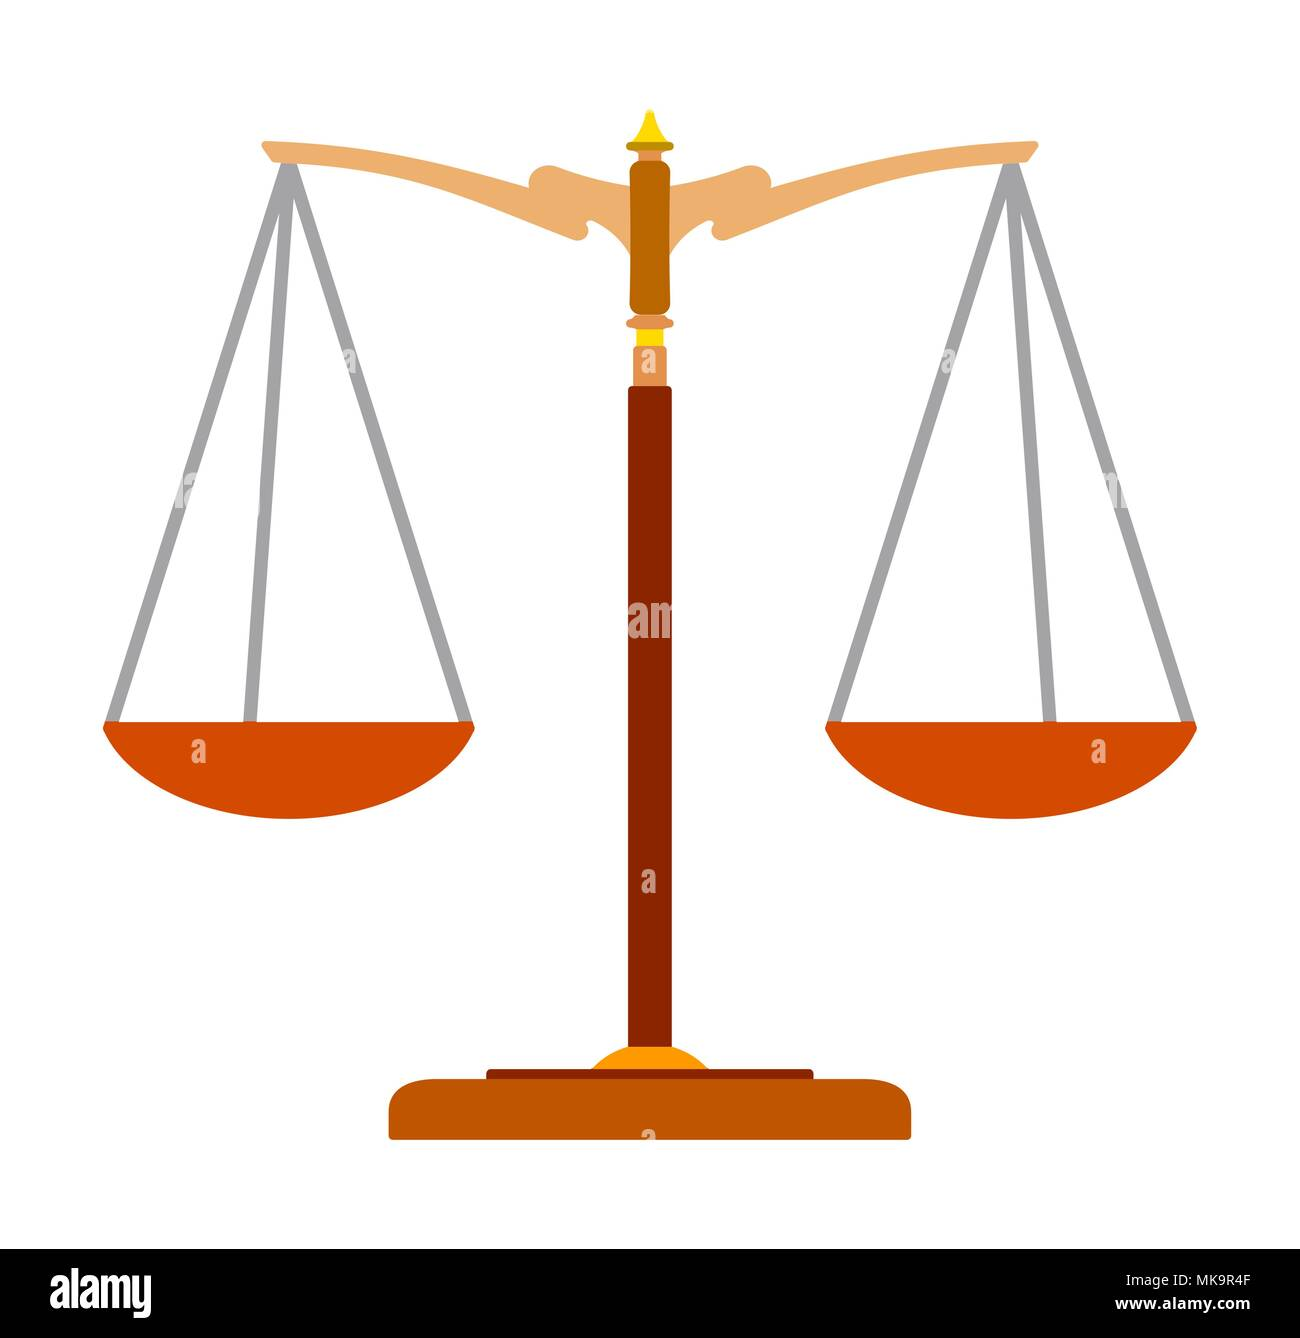 Colorful Flat Icon Of Scales Of Justice Law Balance Symbol Vector